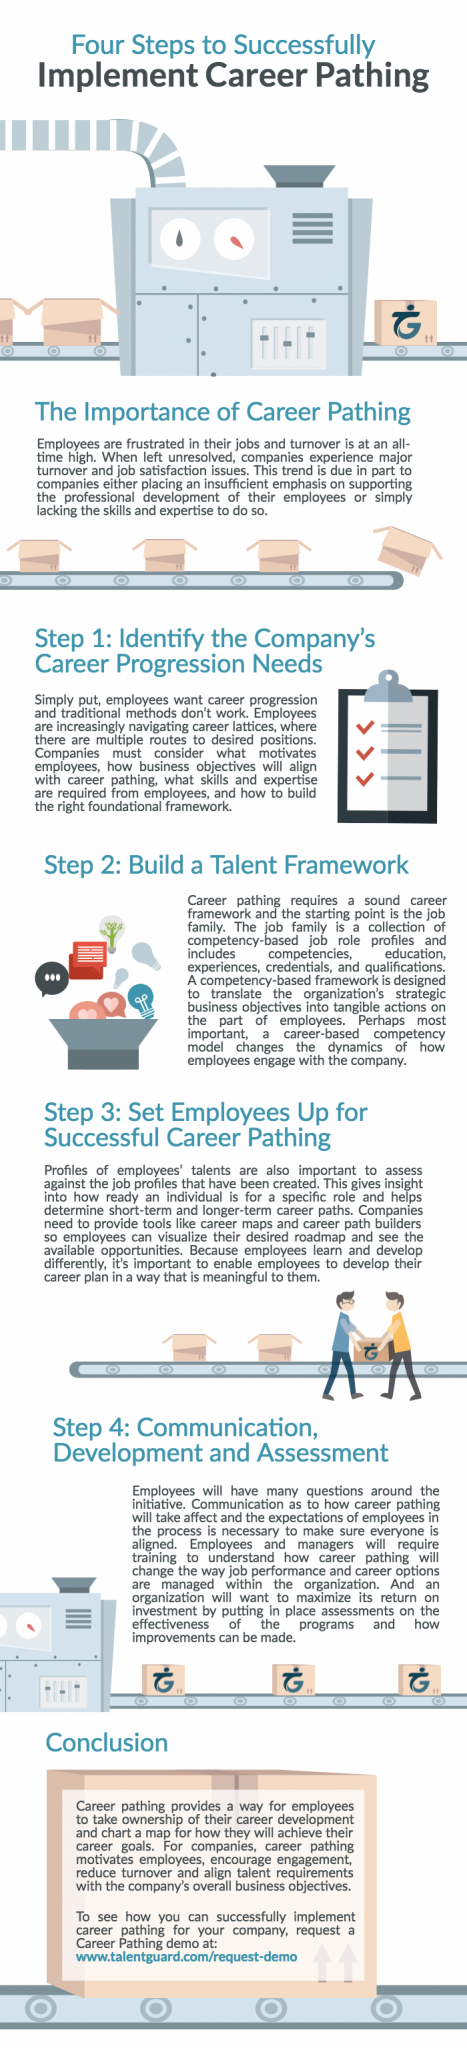 Four Steps to Successfully Implement Career Pathing